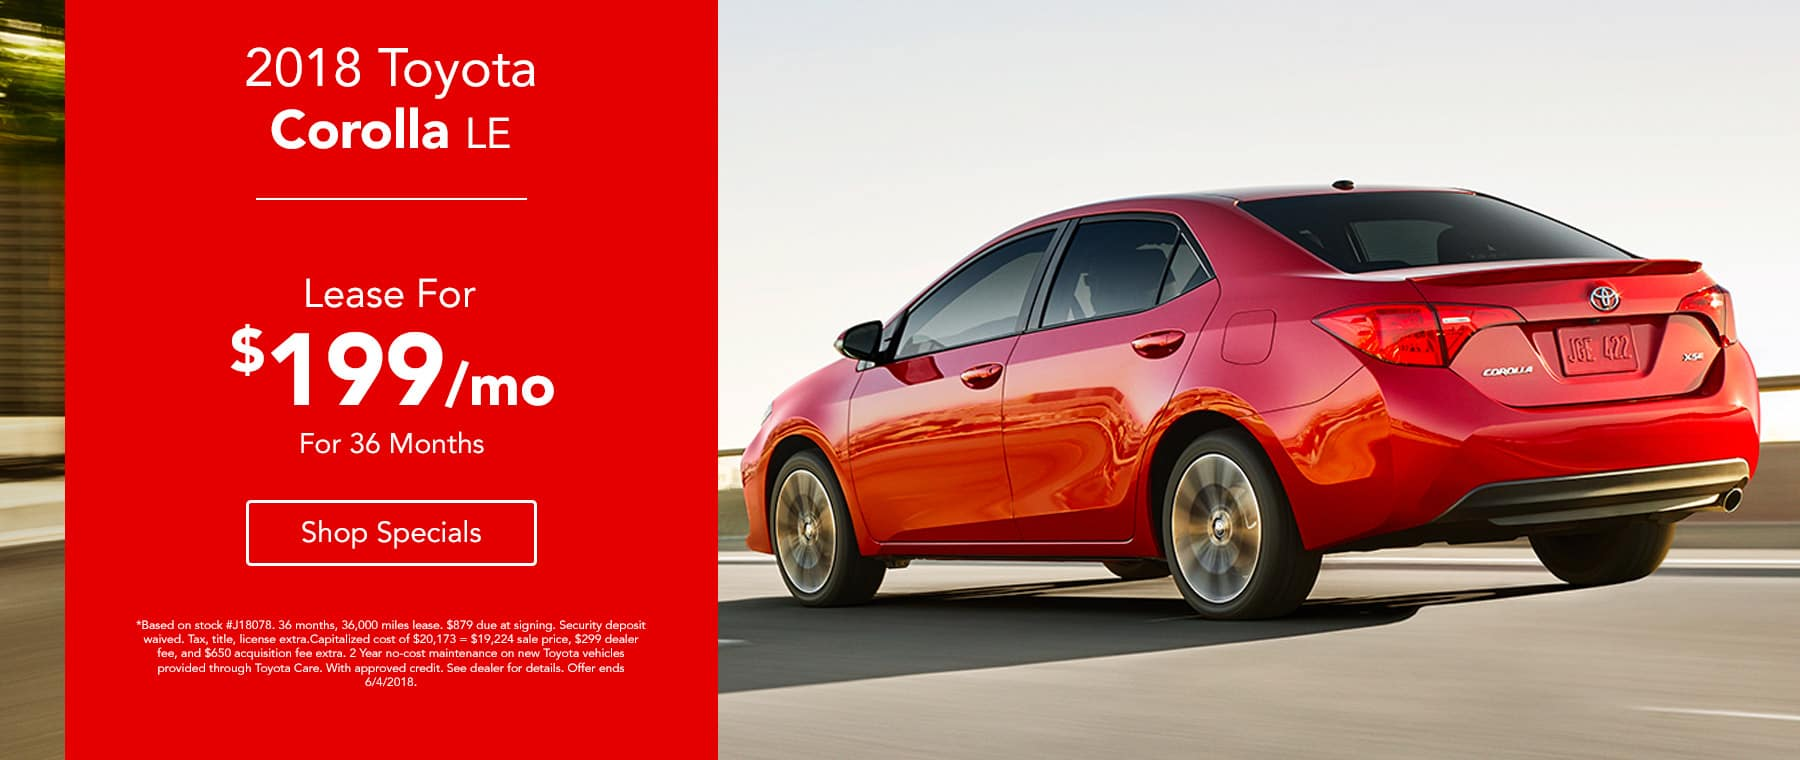 2018 Toyota Corolla - Lease for $199/mo